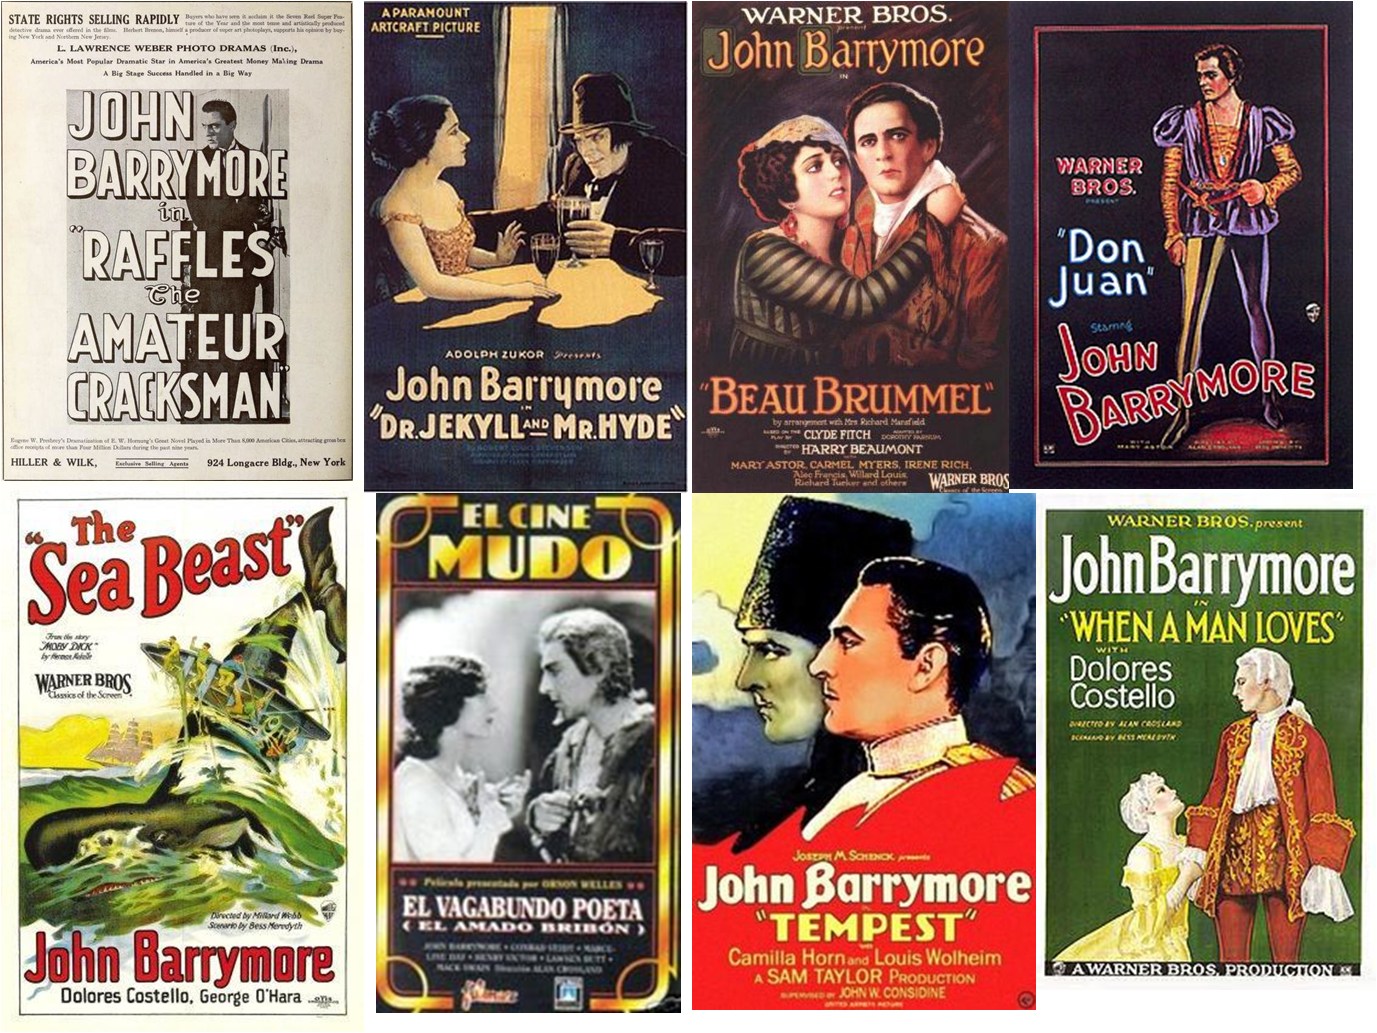 John Barrymore afiches